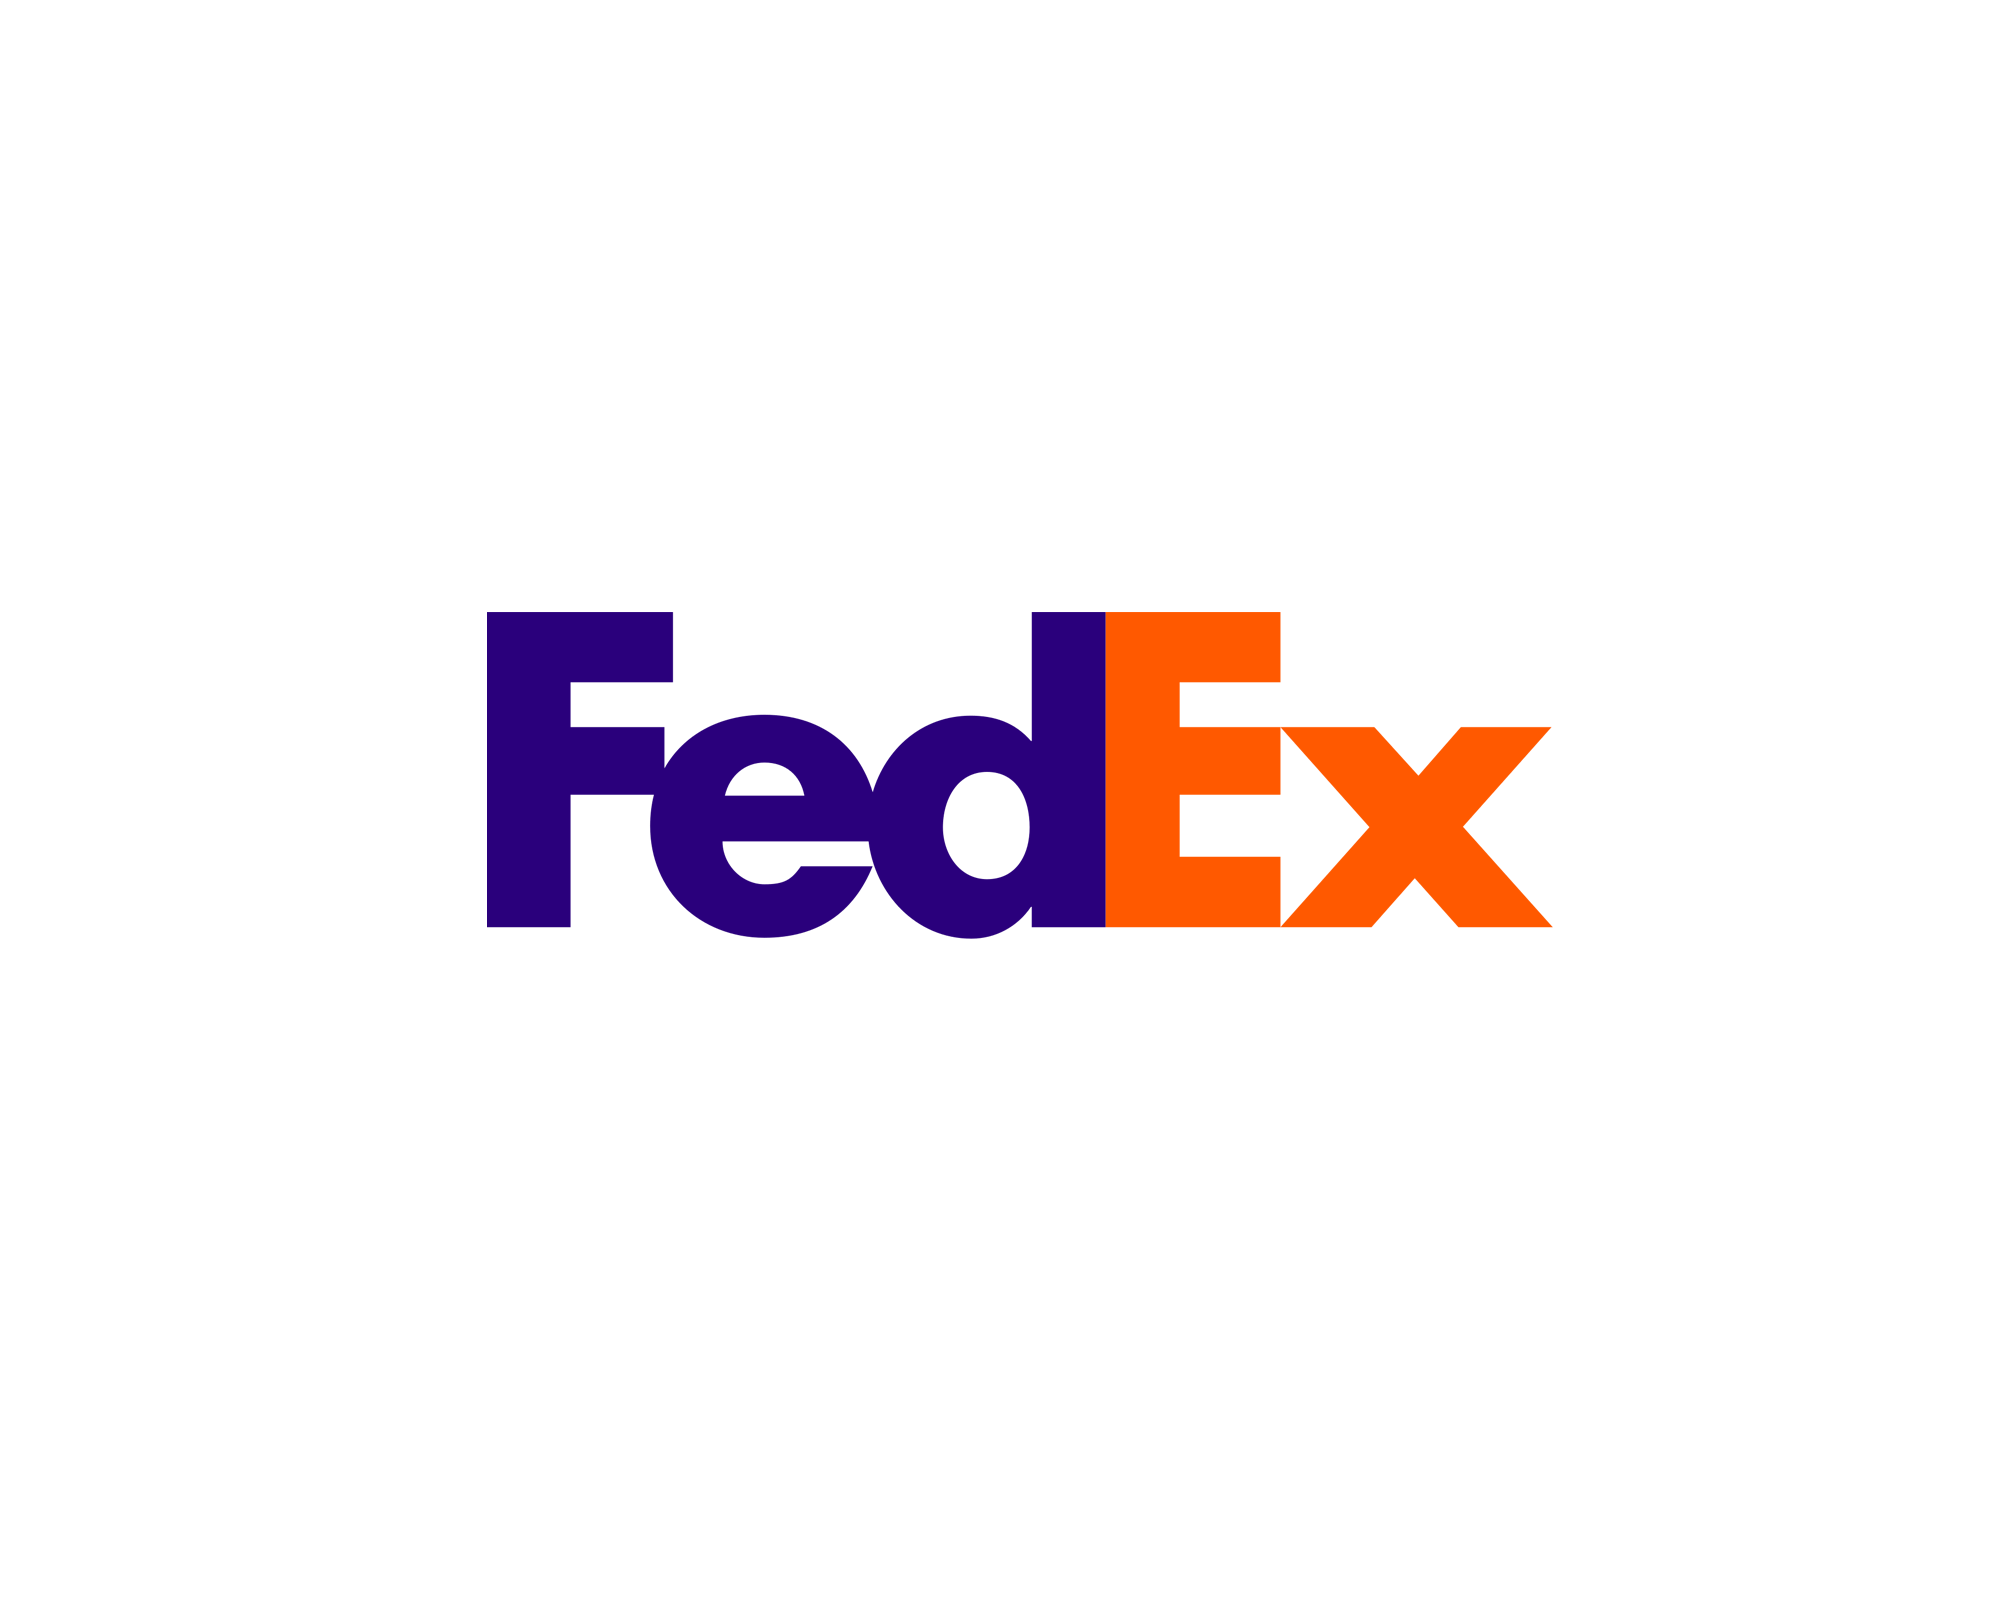 fedex logo transparent png stickpng rh stickpng com fedex express logo vector New FedEx Logo